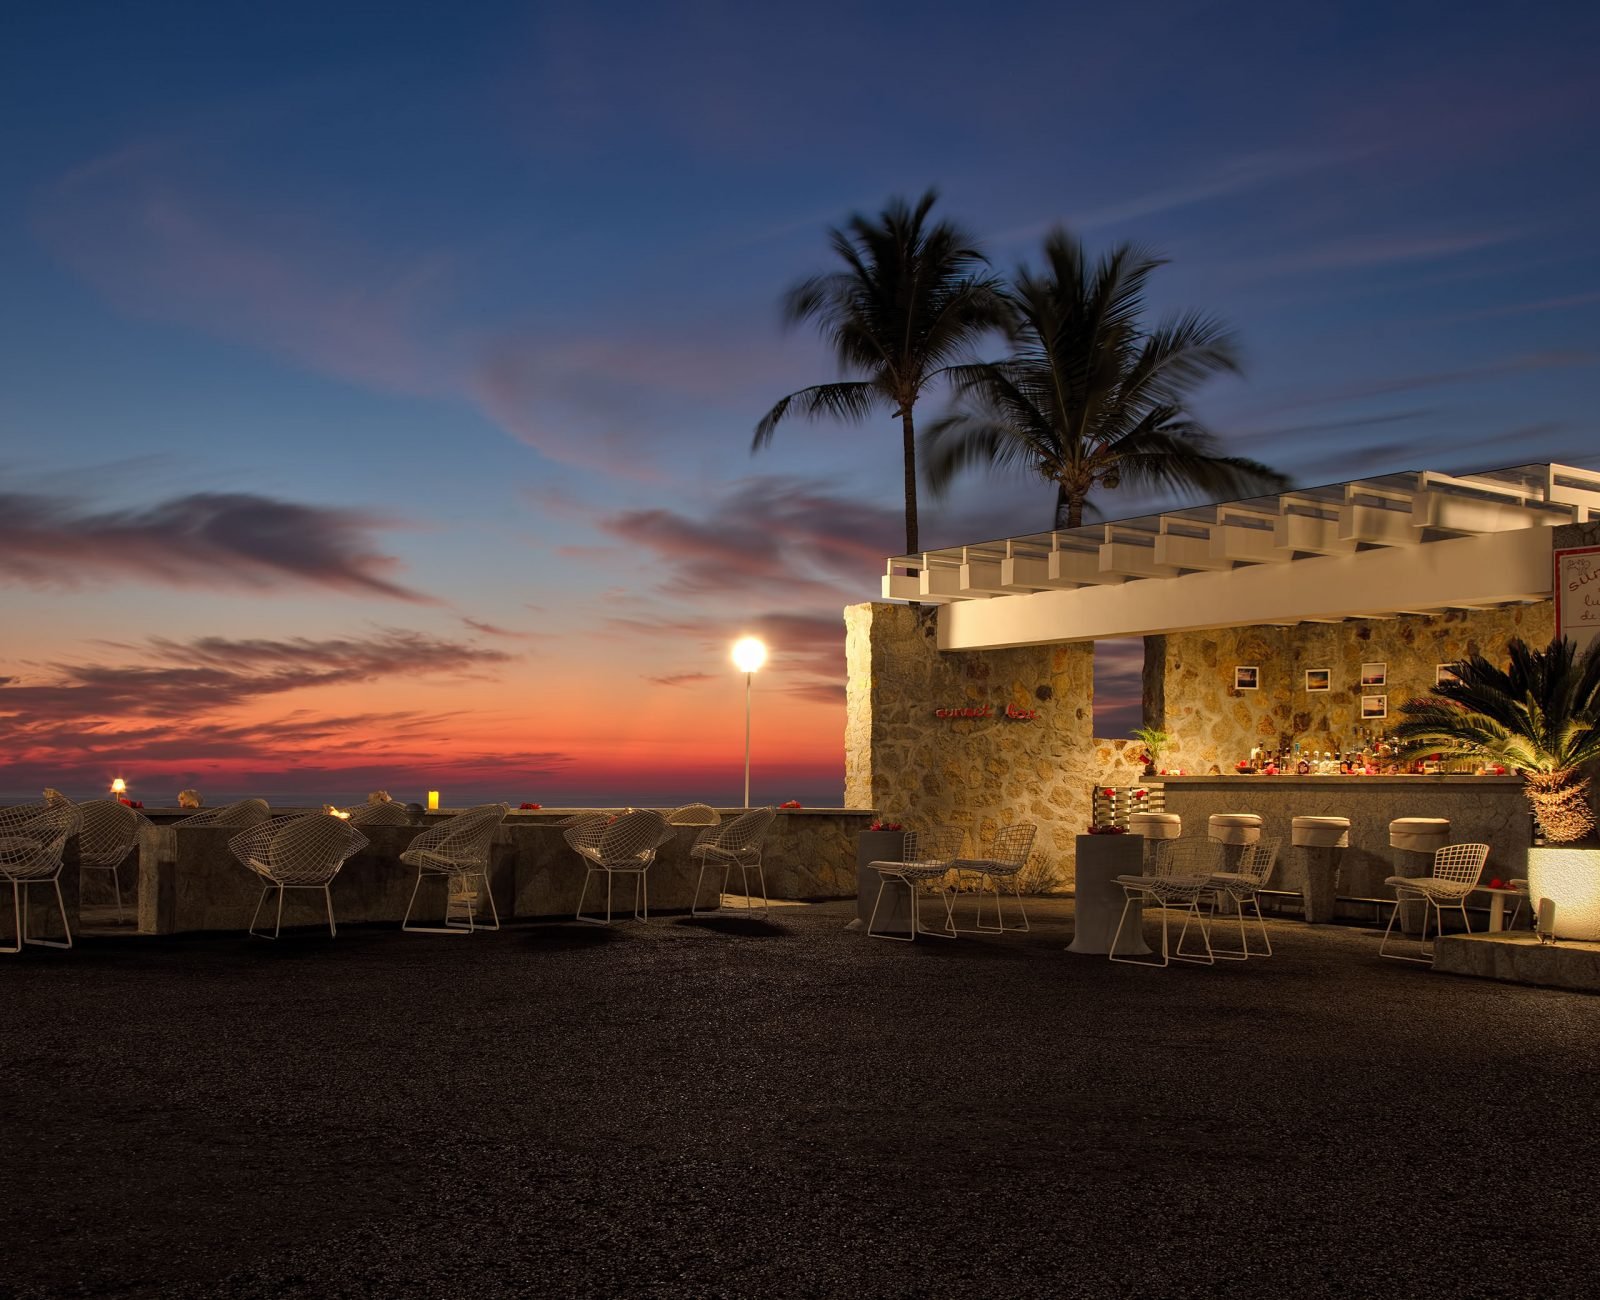 Hotel Las Brisas Acapulco sunset bar